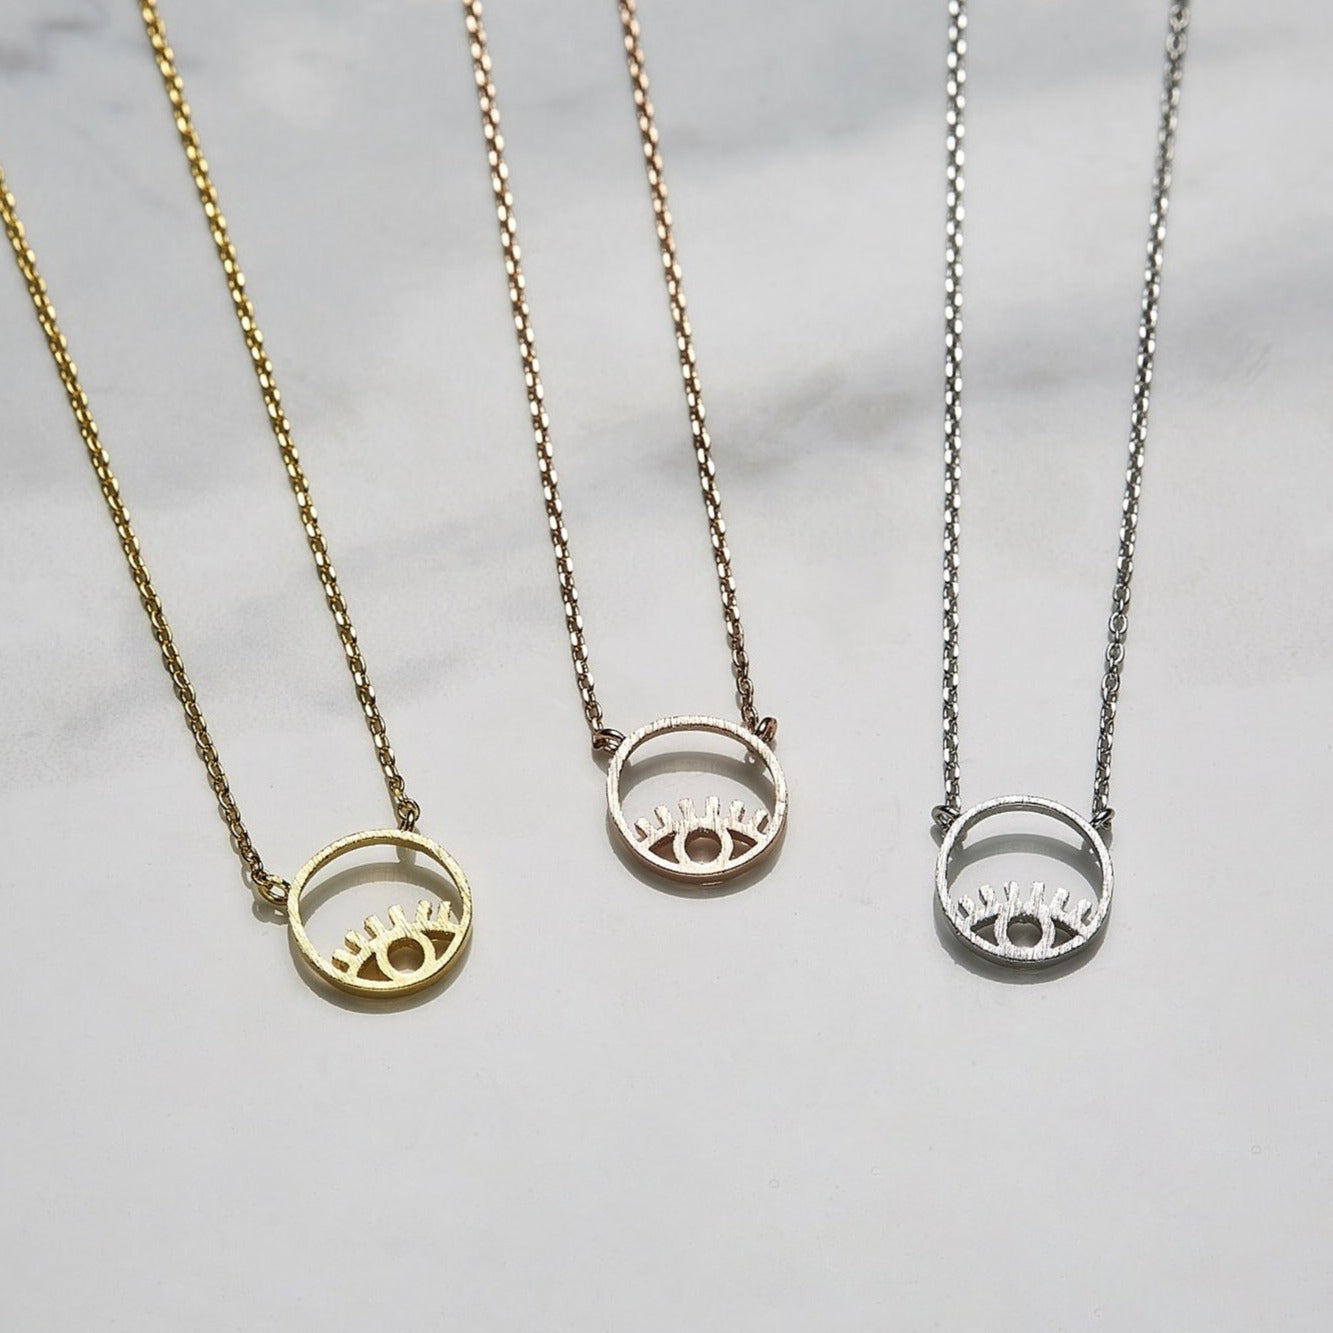 Line eye necklace